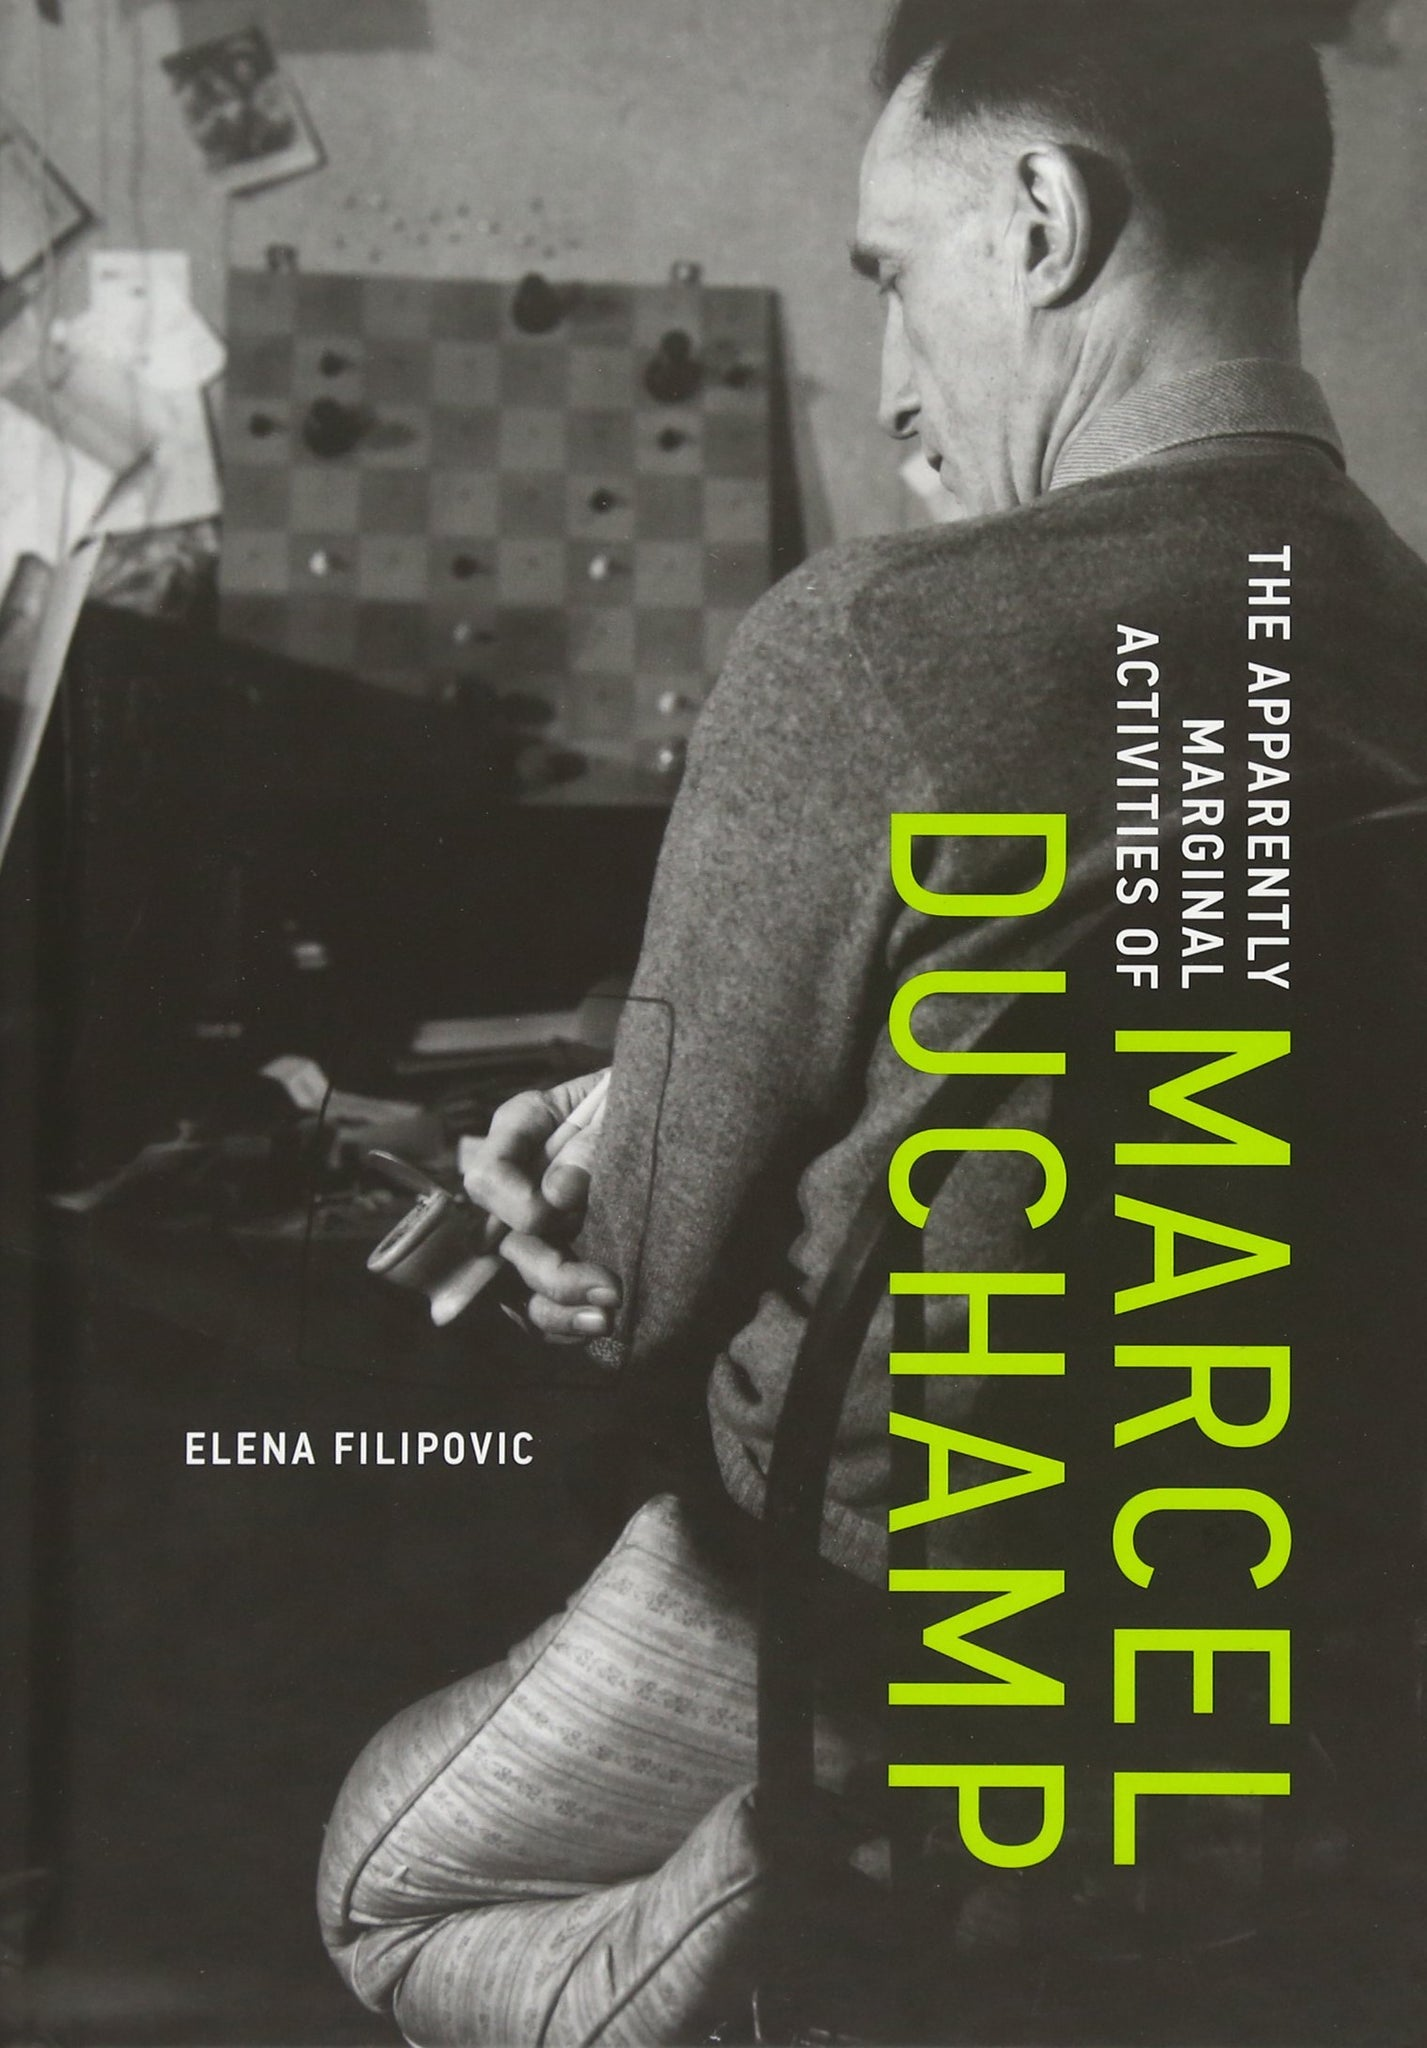 The Apparently Marginal Activities of Marcel Duchamp by Elena Filipovic - Book at Kavi Gupta Editions